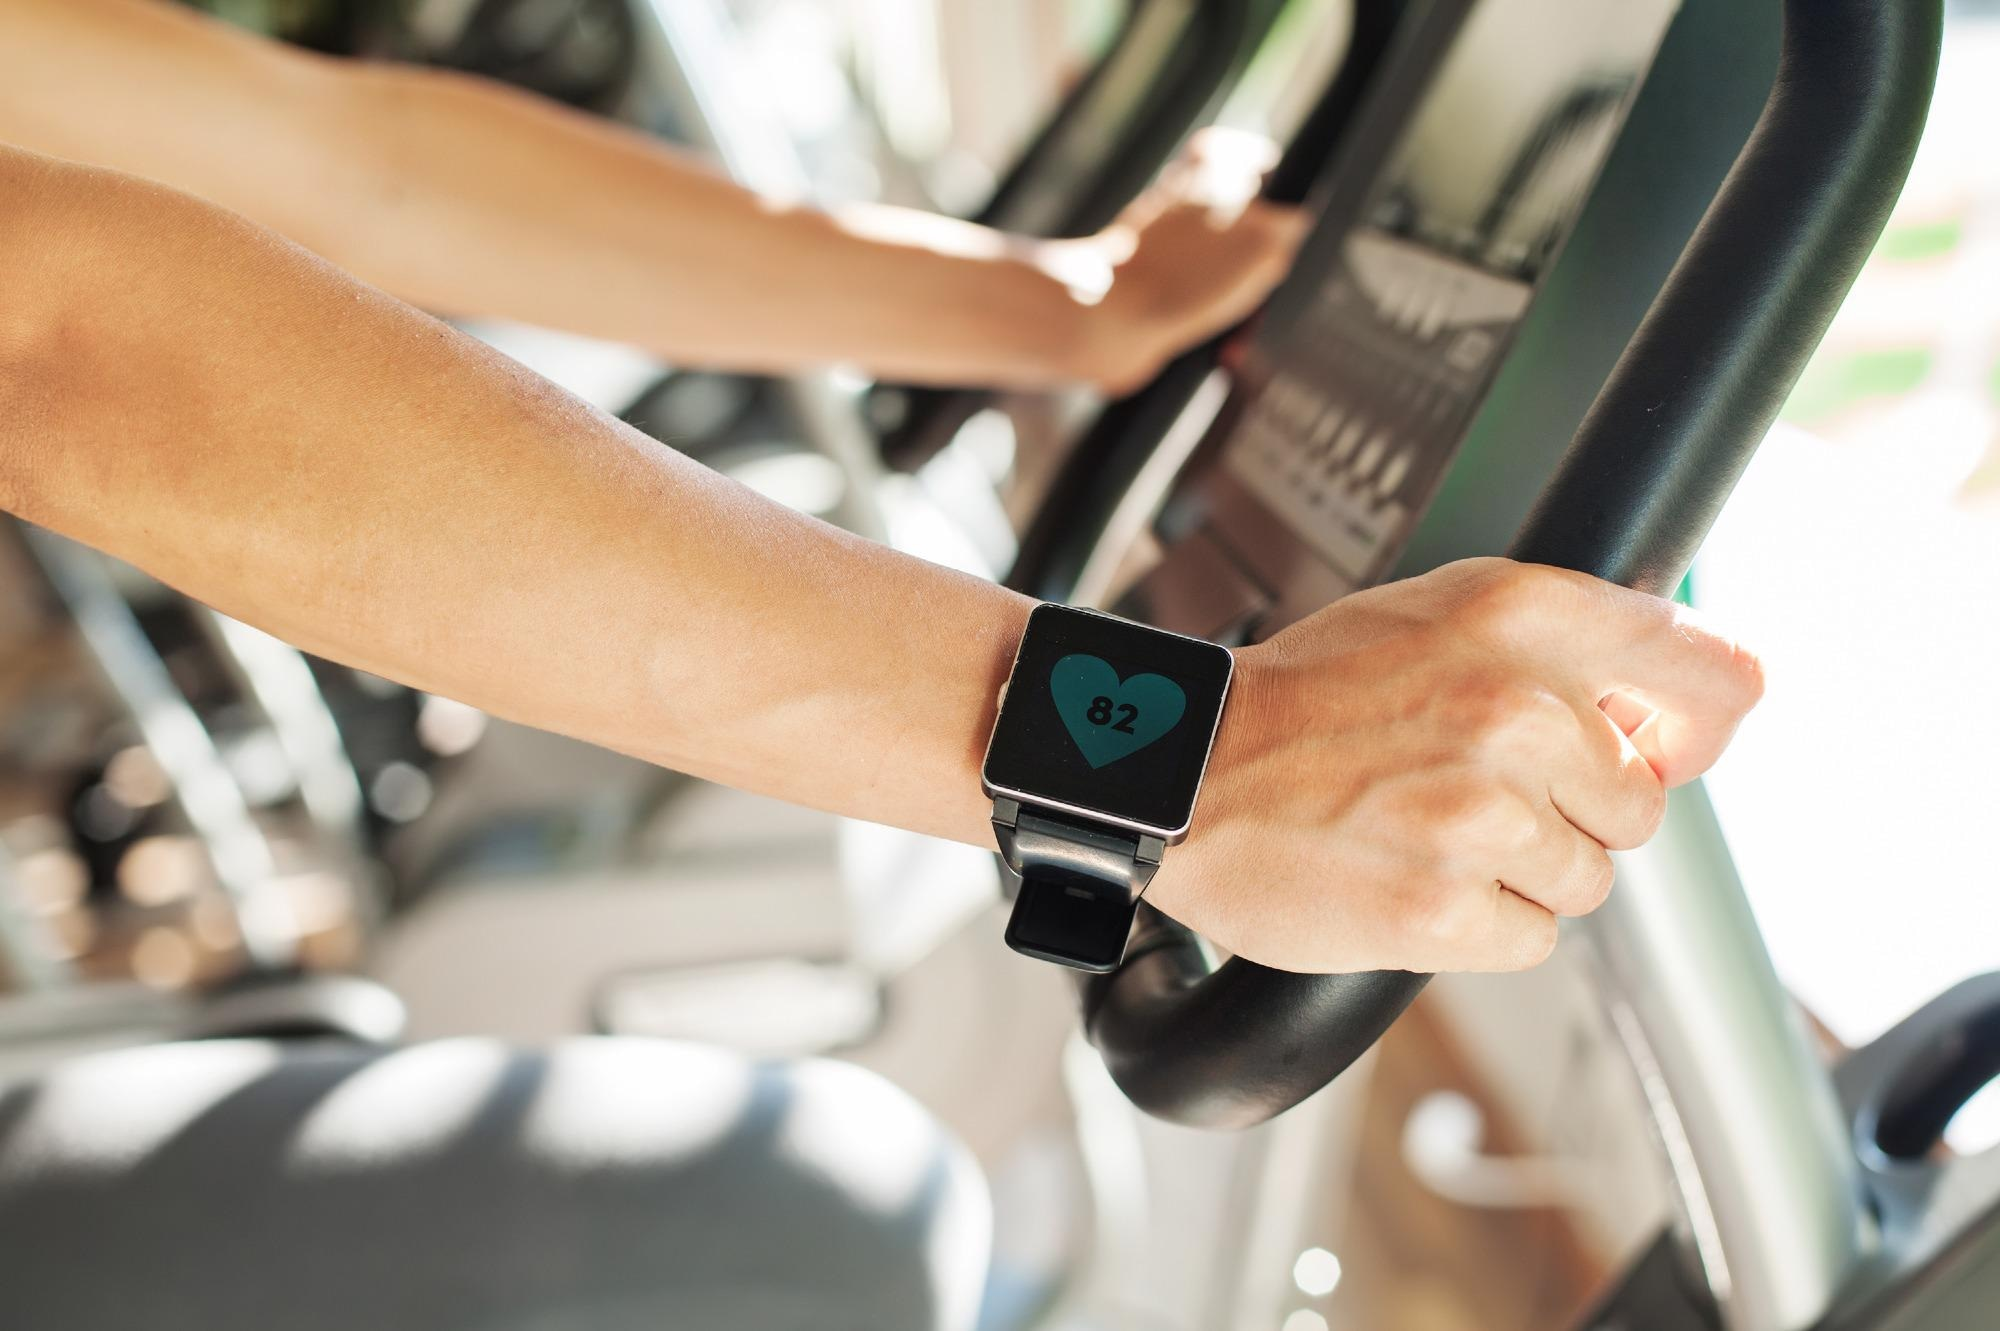 Wearable Sensors Could Help Perform Tests to Reduce COVID-19 Detection Time